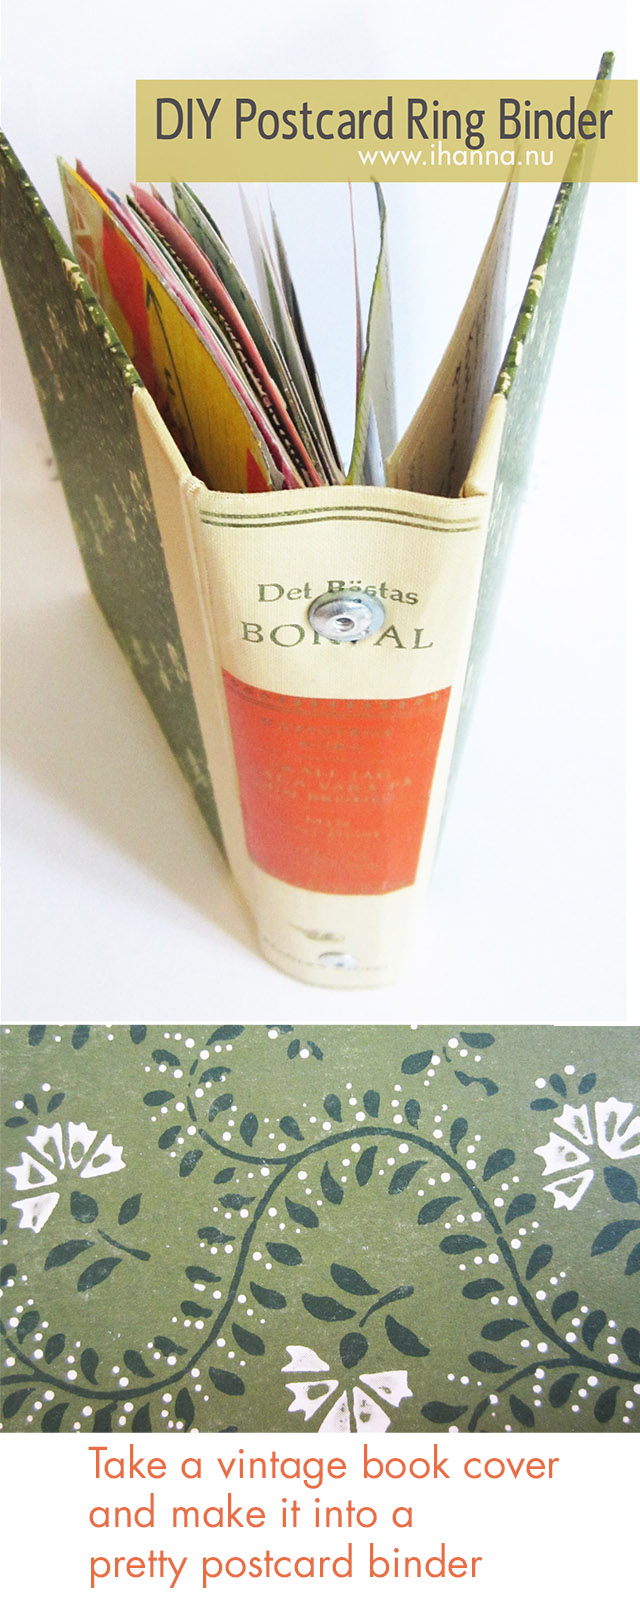 Creative Idea: Take a vintage book cover and make a pretty postcard binder - more info at www.ihanna.nu